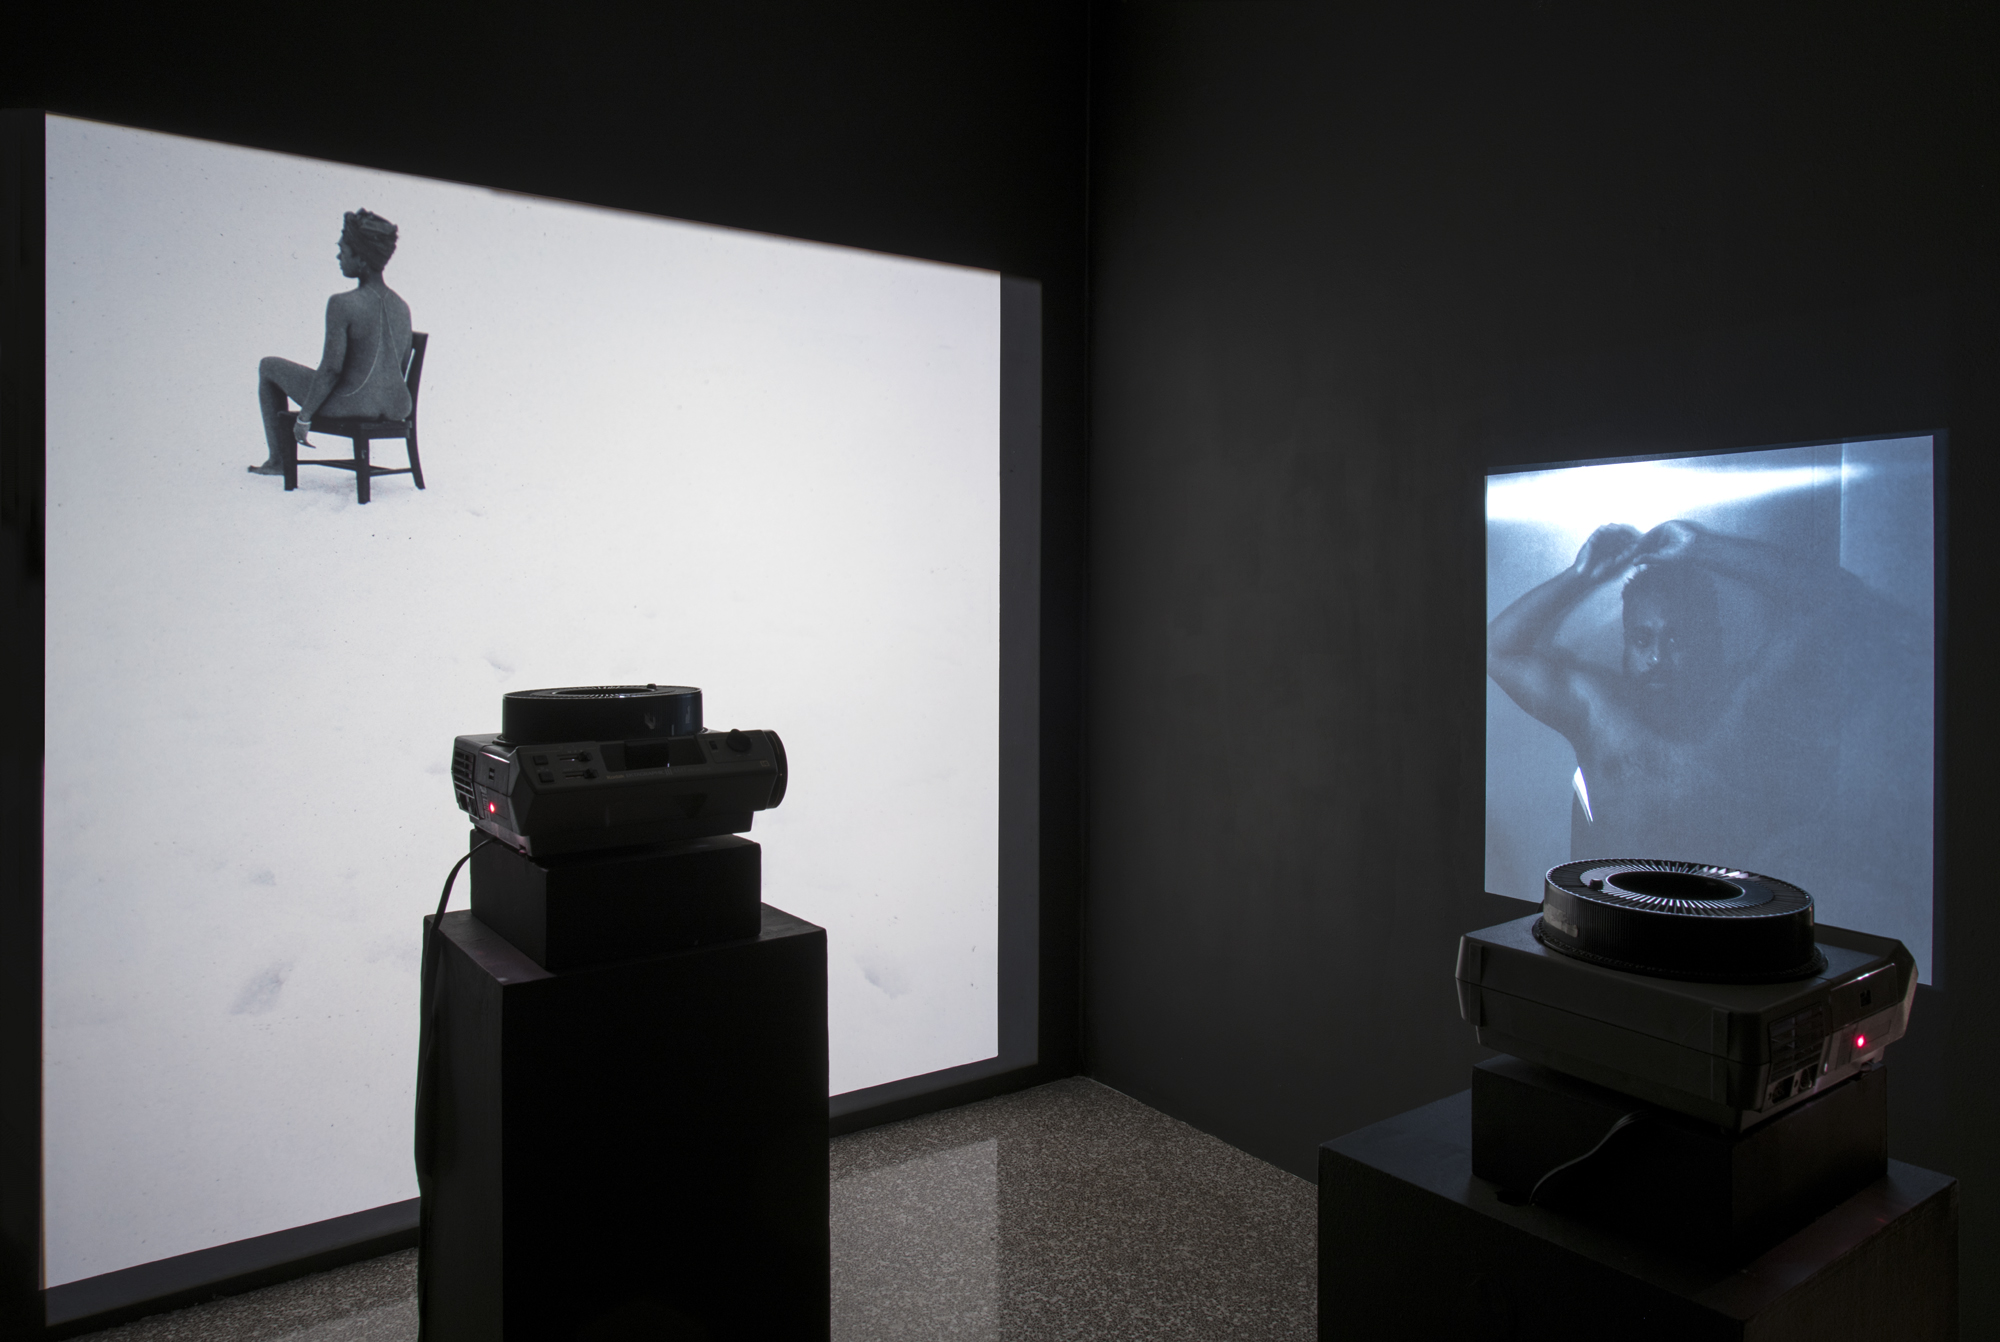 08.Installation View. Projection Room.jpg